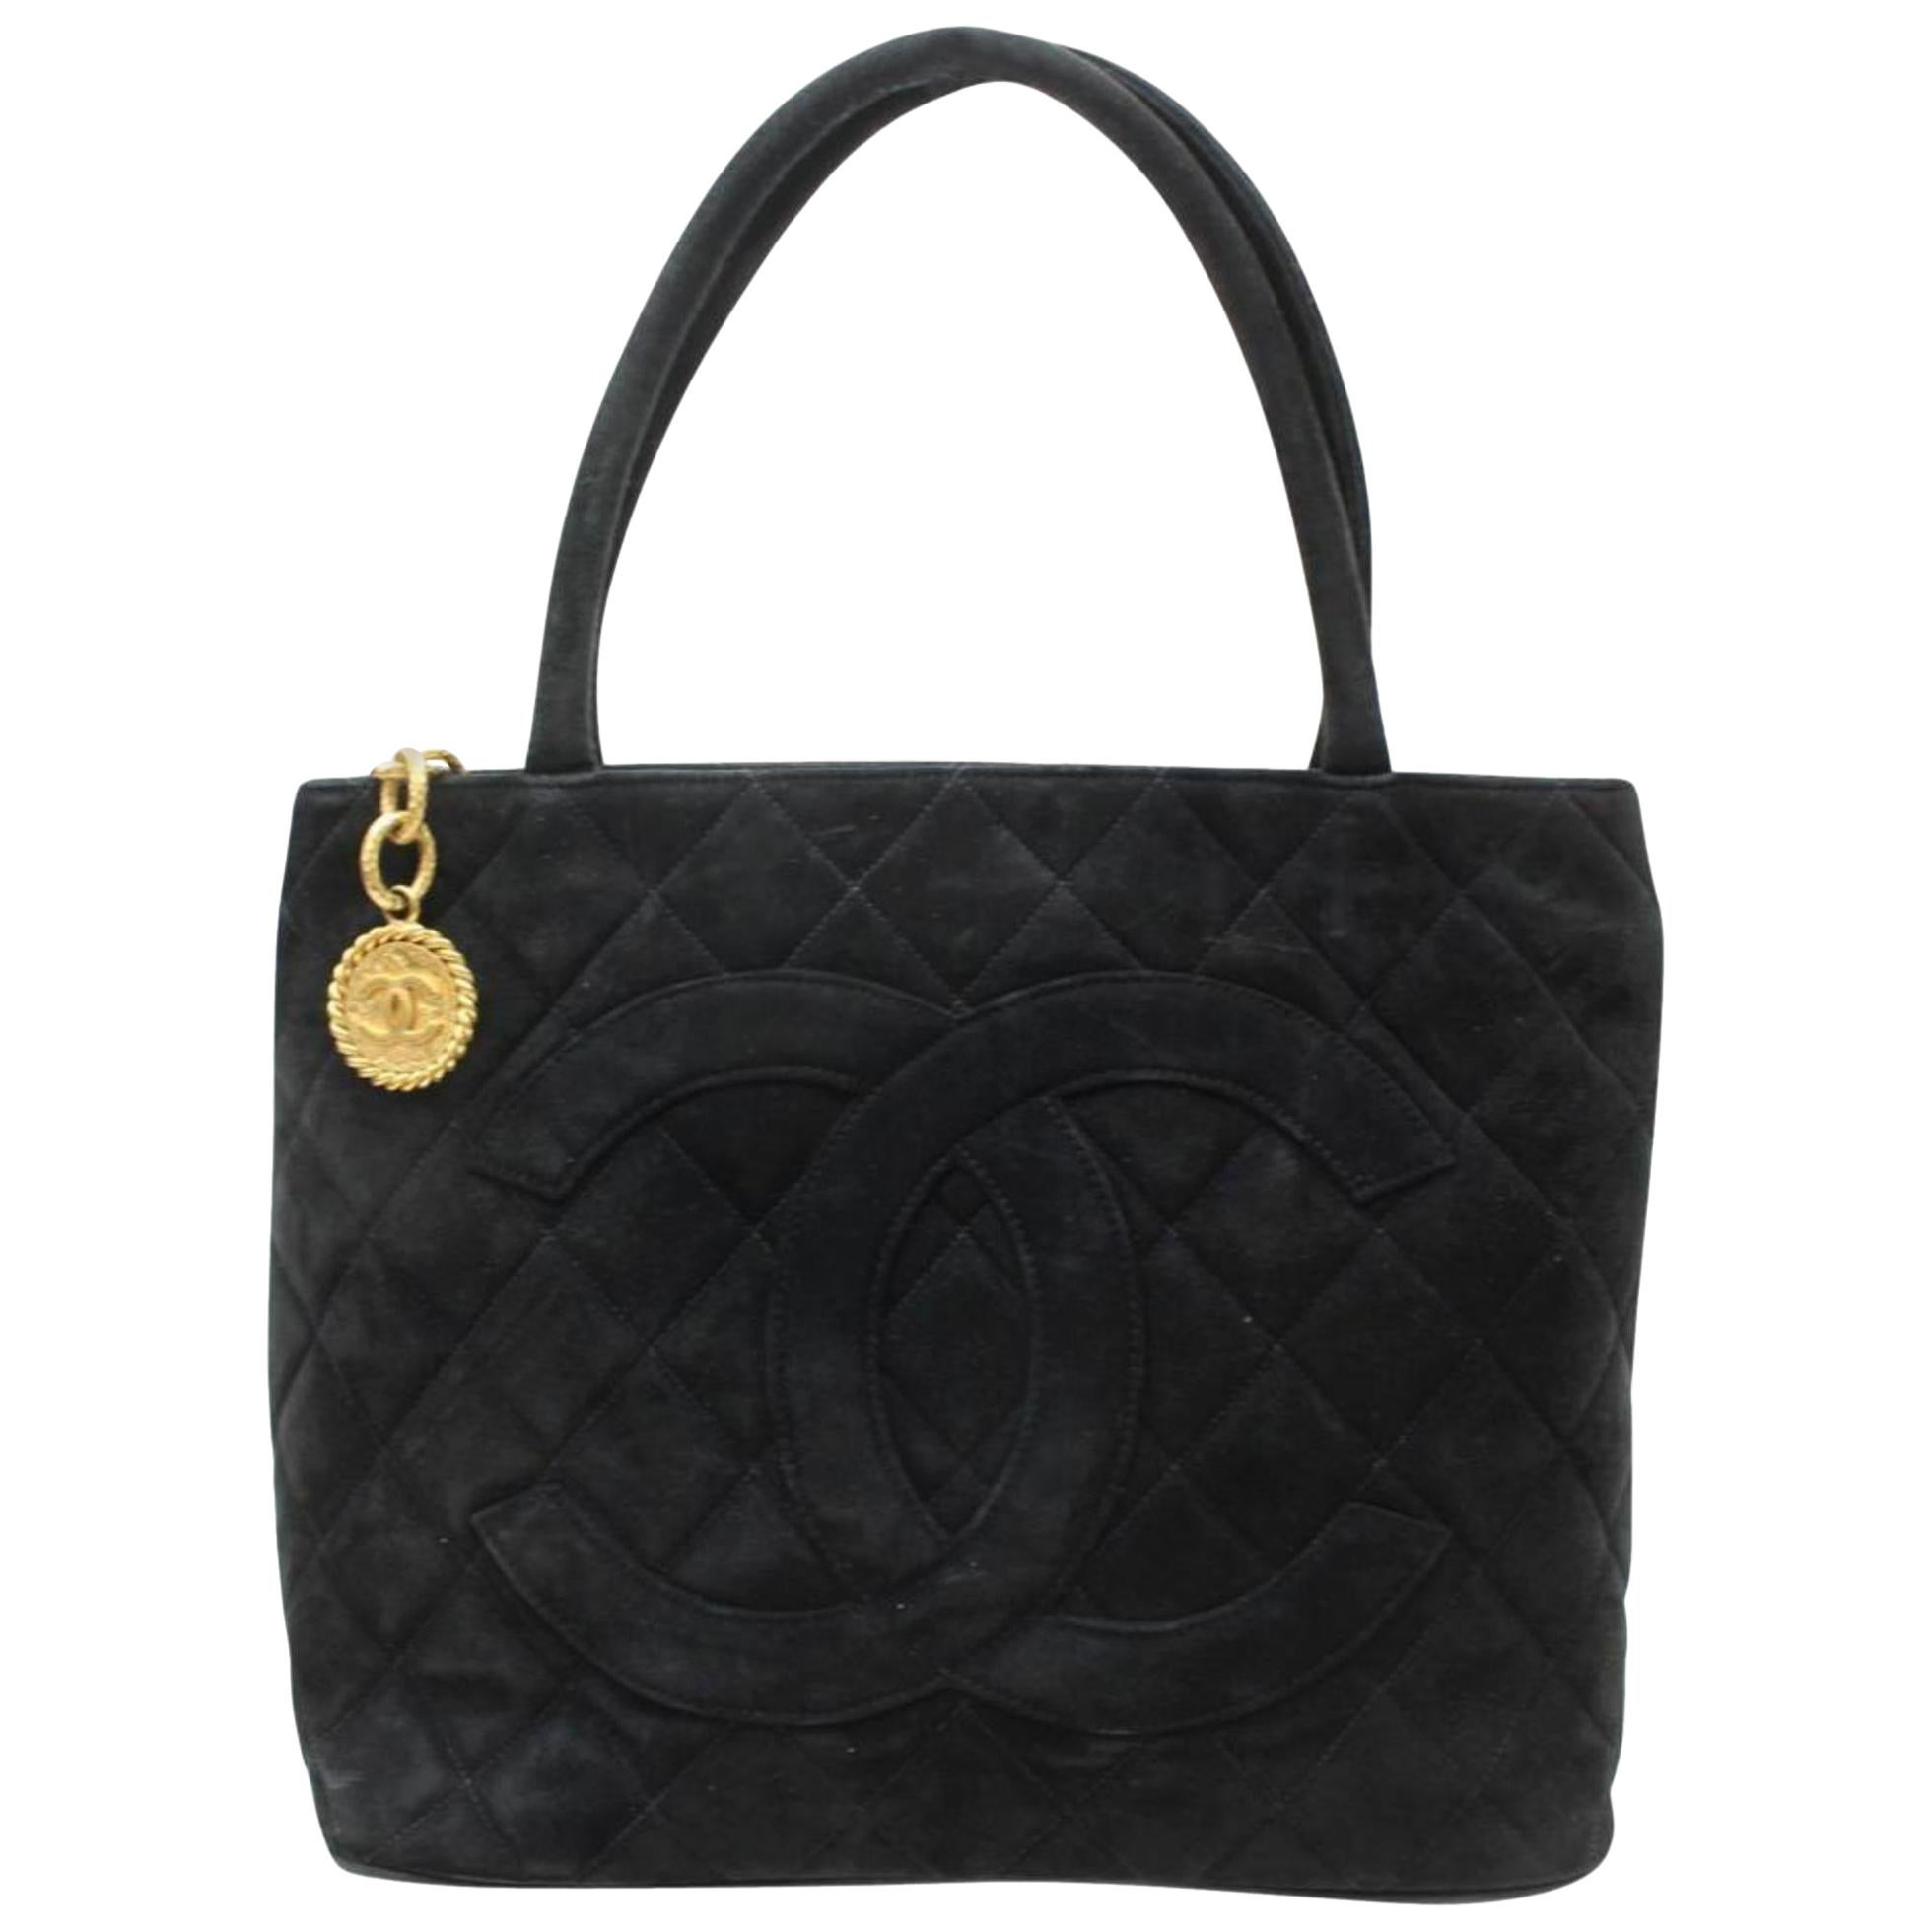 9bb2b91c95f2c2 Chanel Quilted Bags - 1895 For Sale on 1stdibs